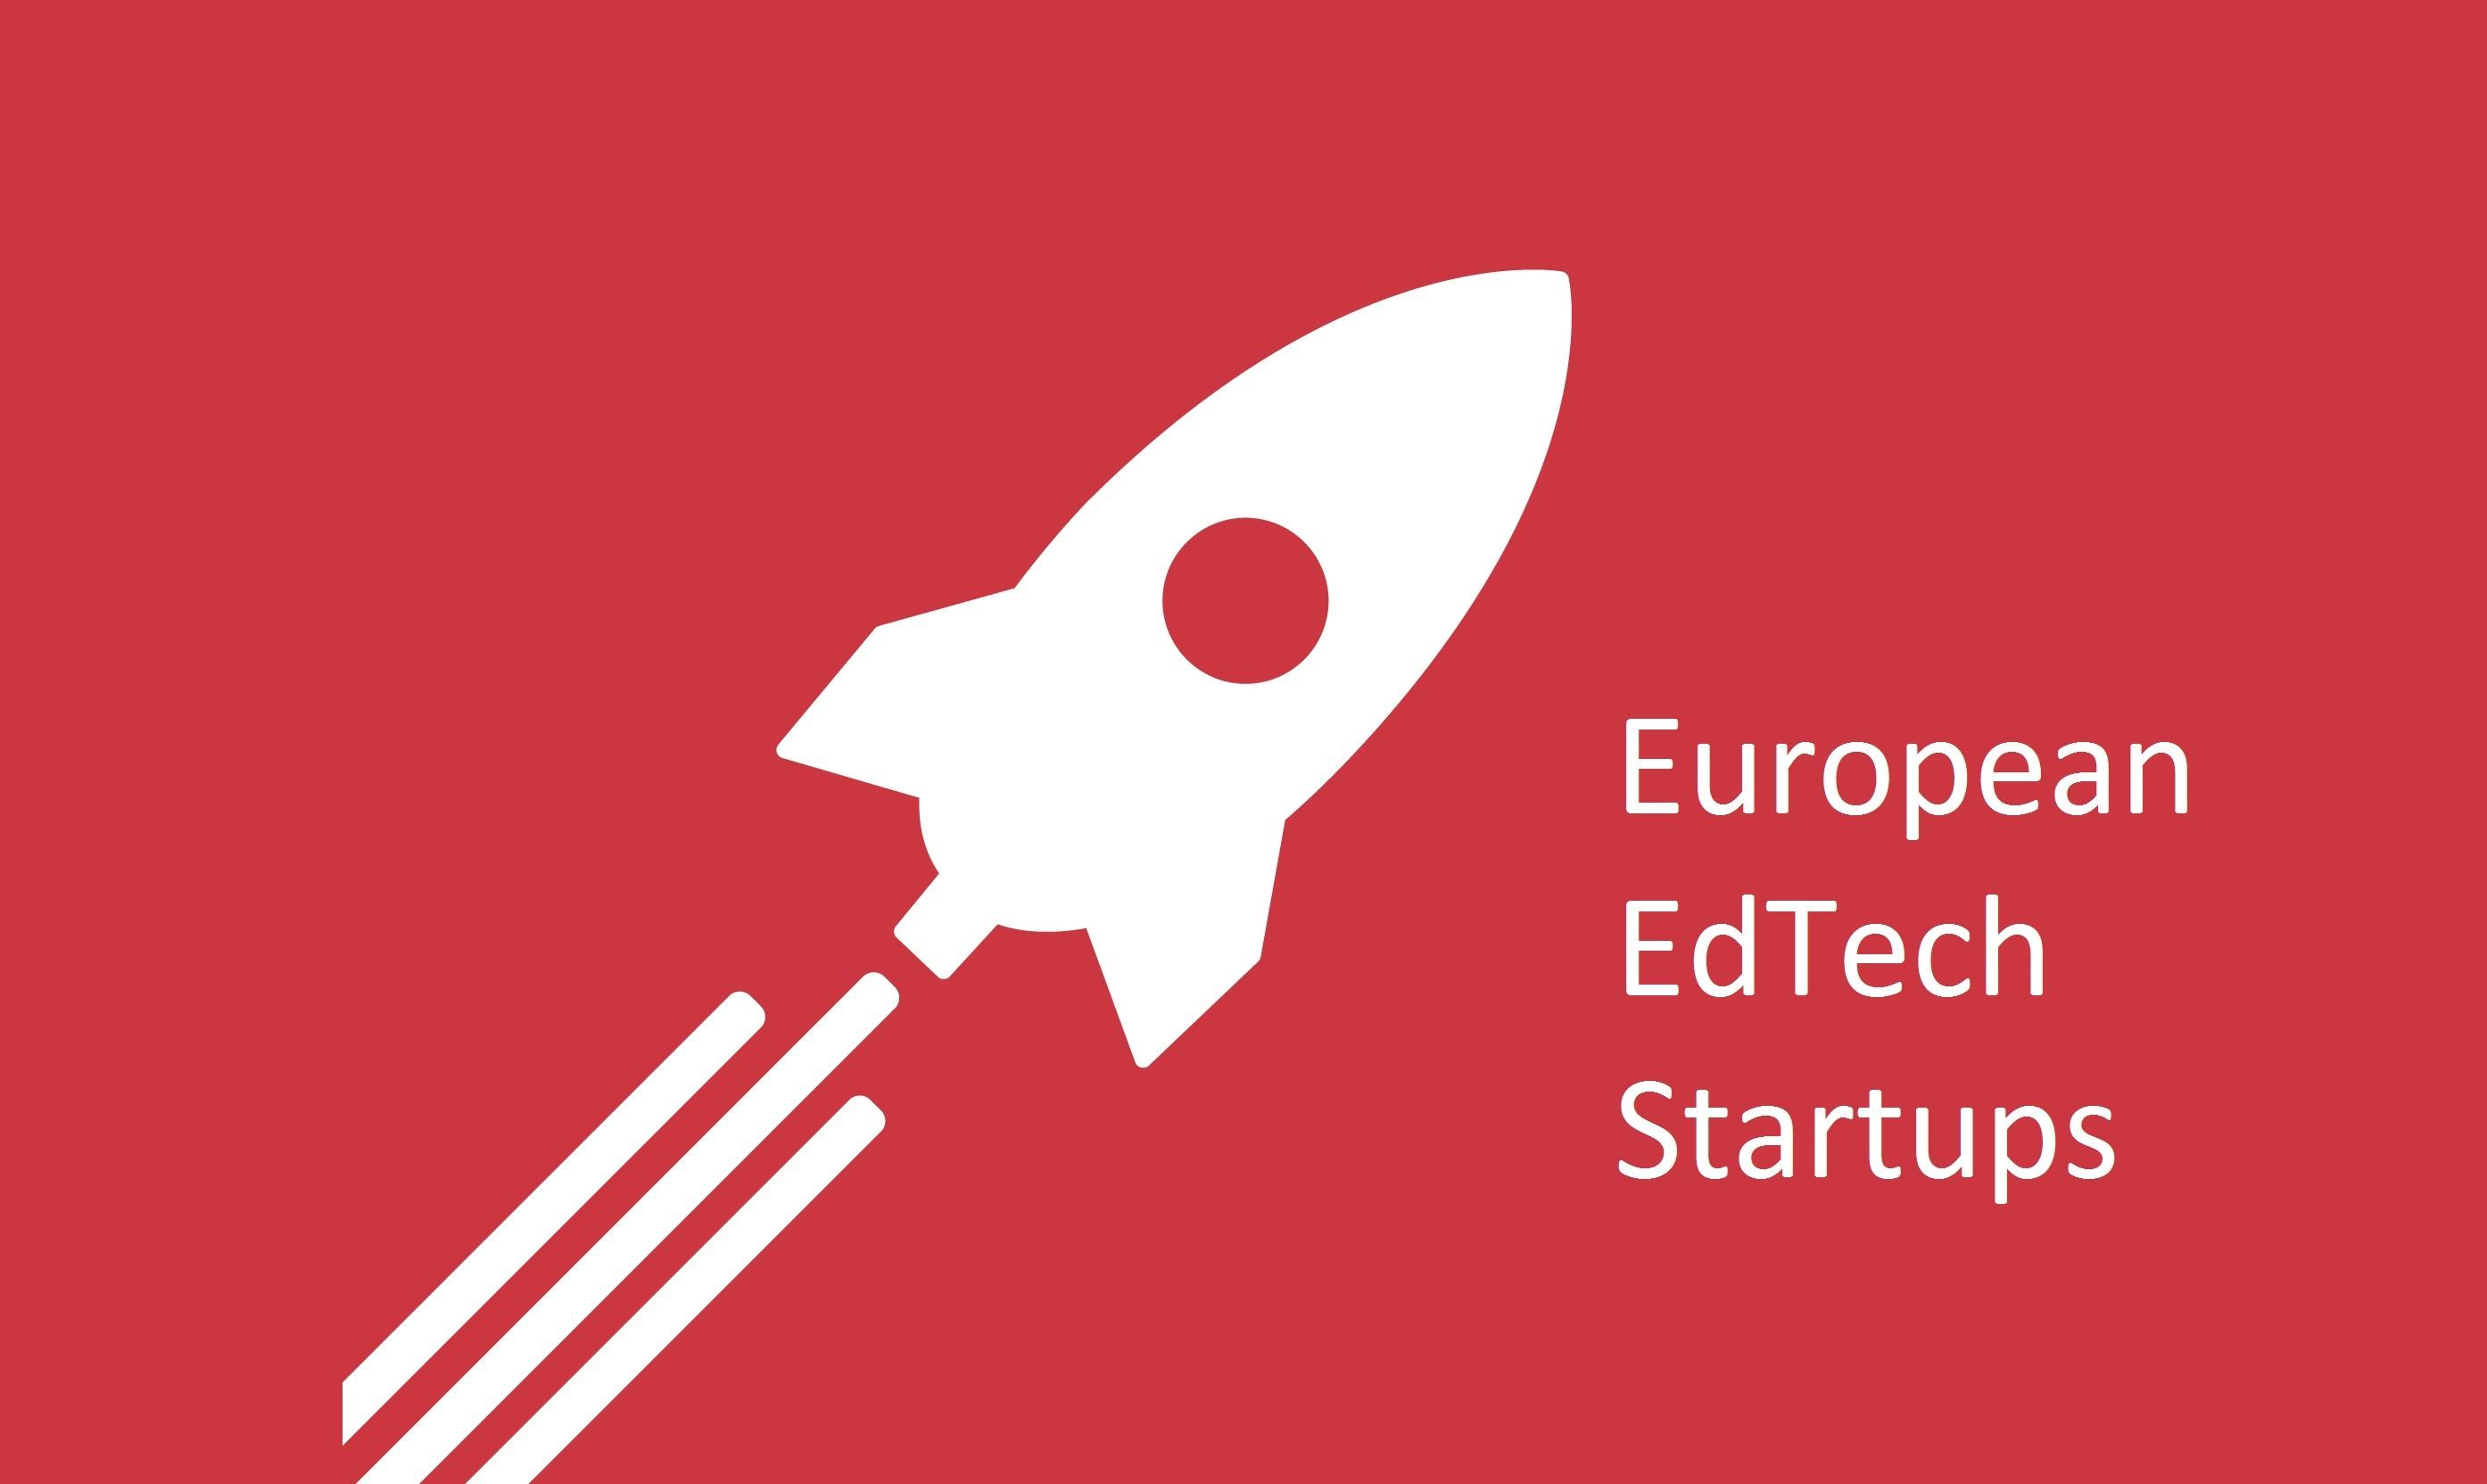 10 EdTech Startups from Europe You Must Know About